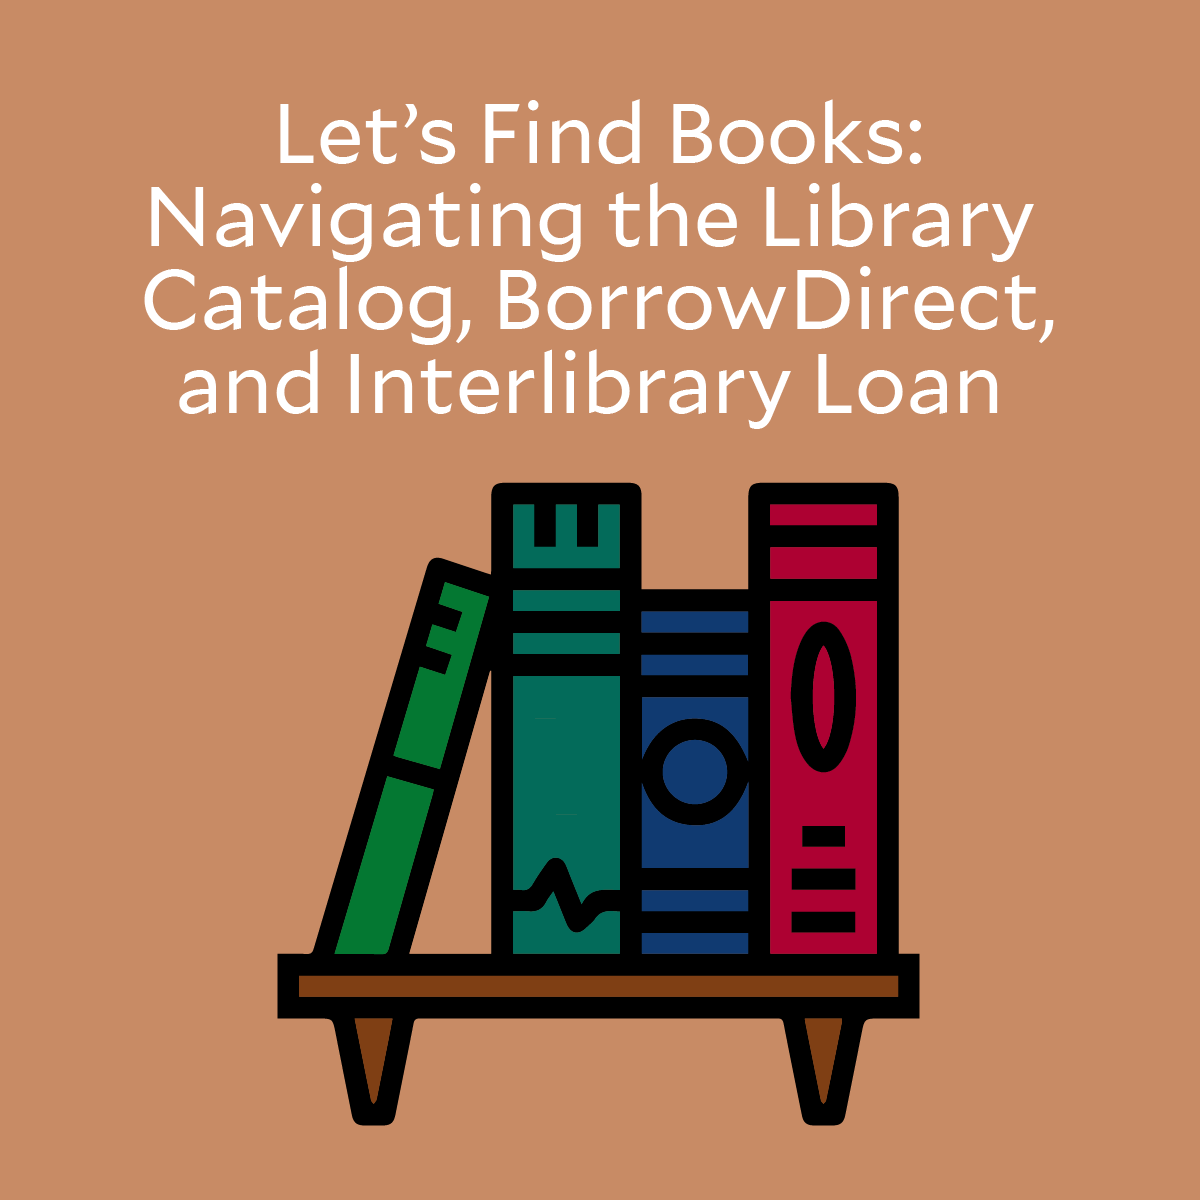 Let's Find Books: Navigating the Library Catalog, BorrowDirect, and Interlibrary Loan